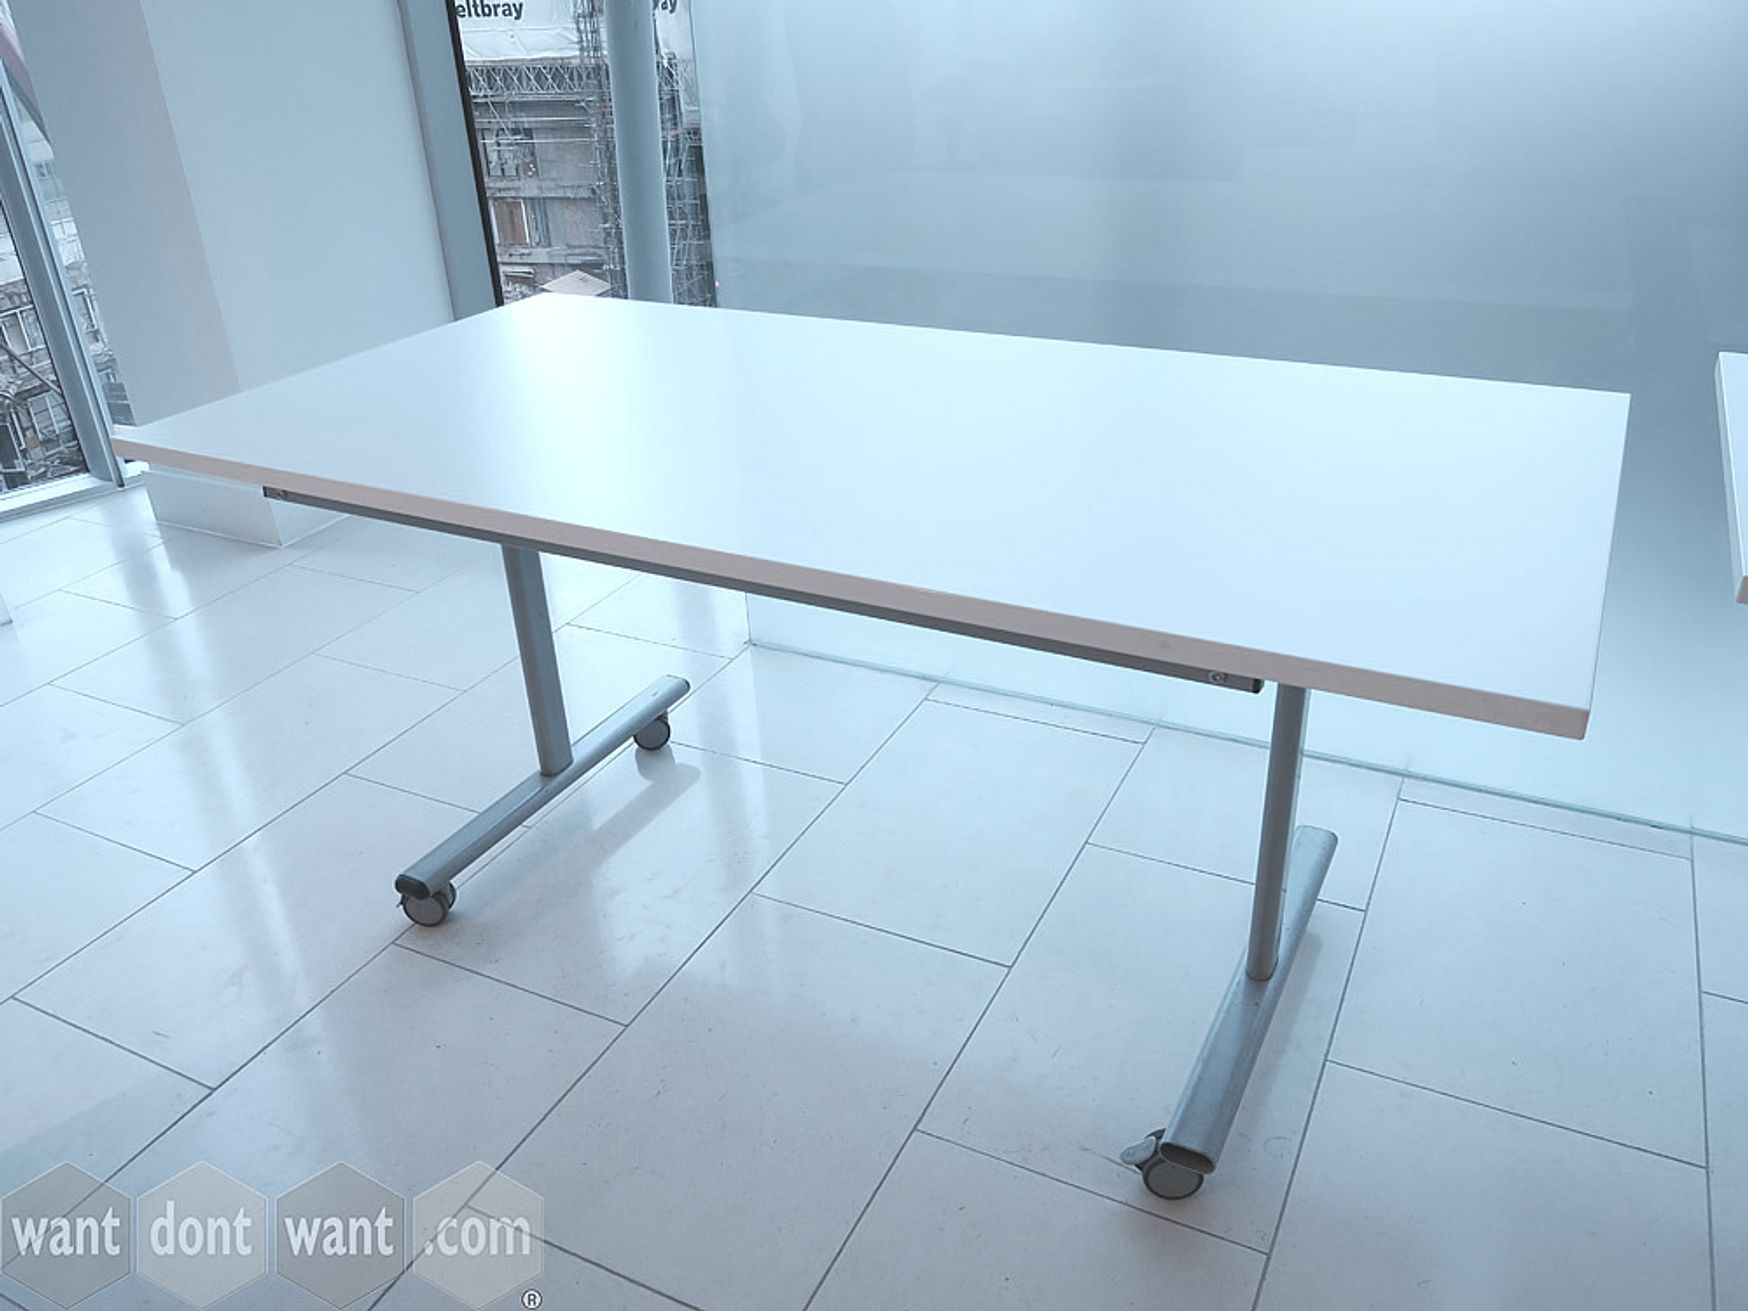 Used 1600mm White Flip-top Folding Table